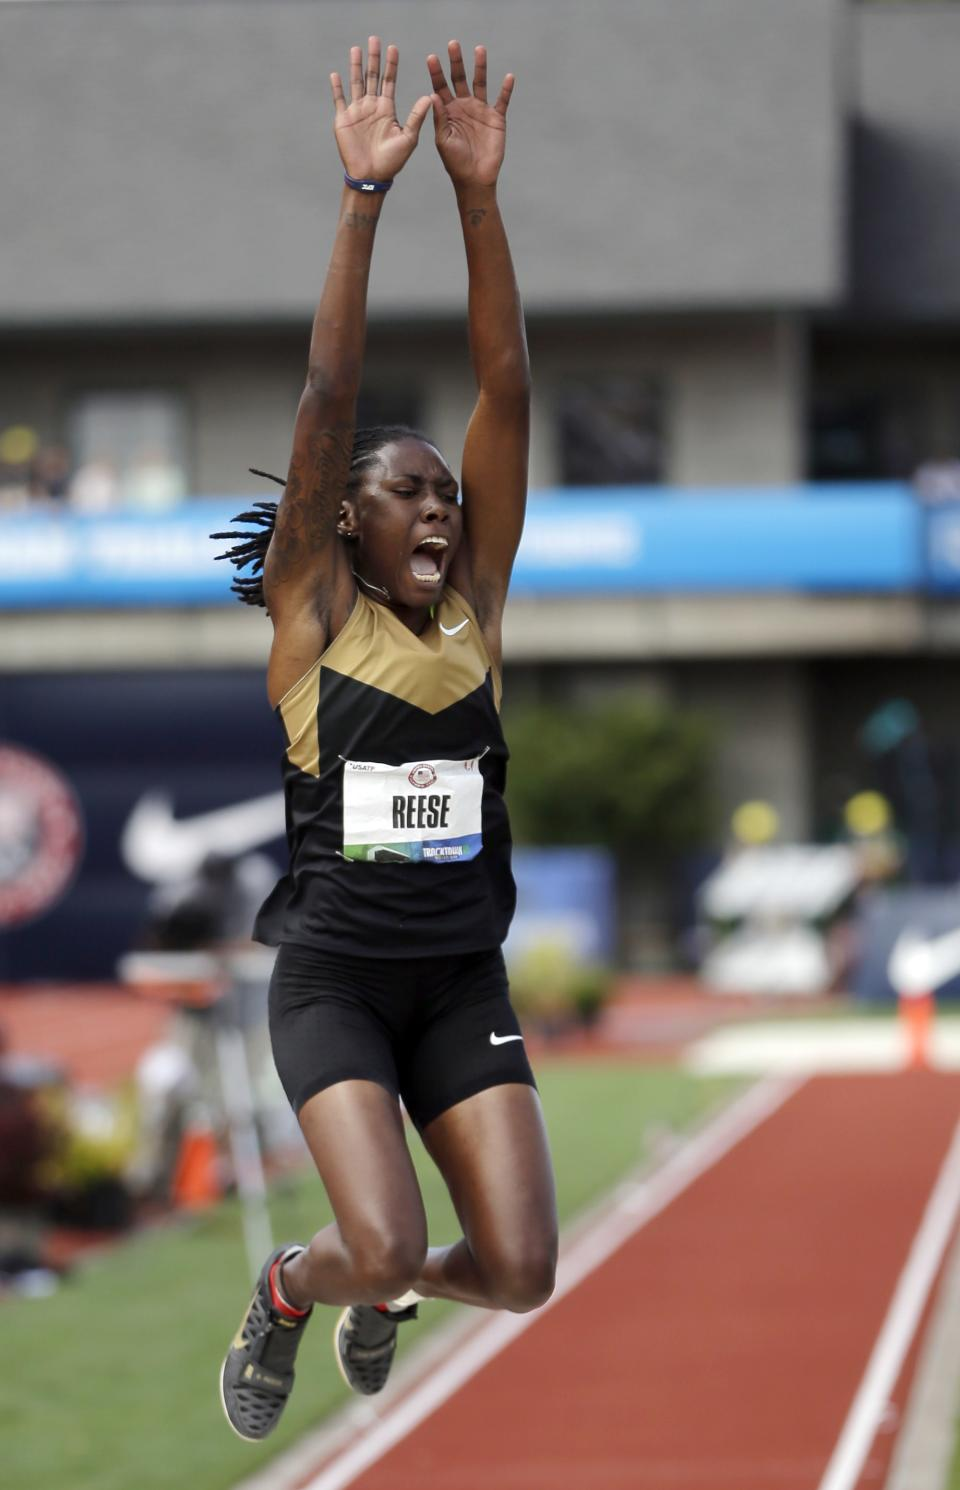 Brittney Reese competes in the women's long jump final at the U.S. Olympic Track and Field Trials Sunday, July 1, 2012, in Eugene, Ore. Reese came in first and made the Olympic team. (AP Photo/Matt Slocum)